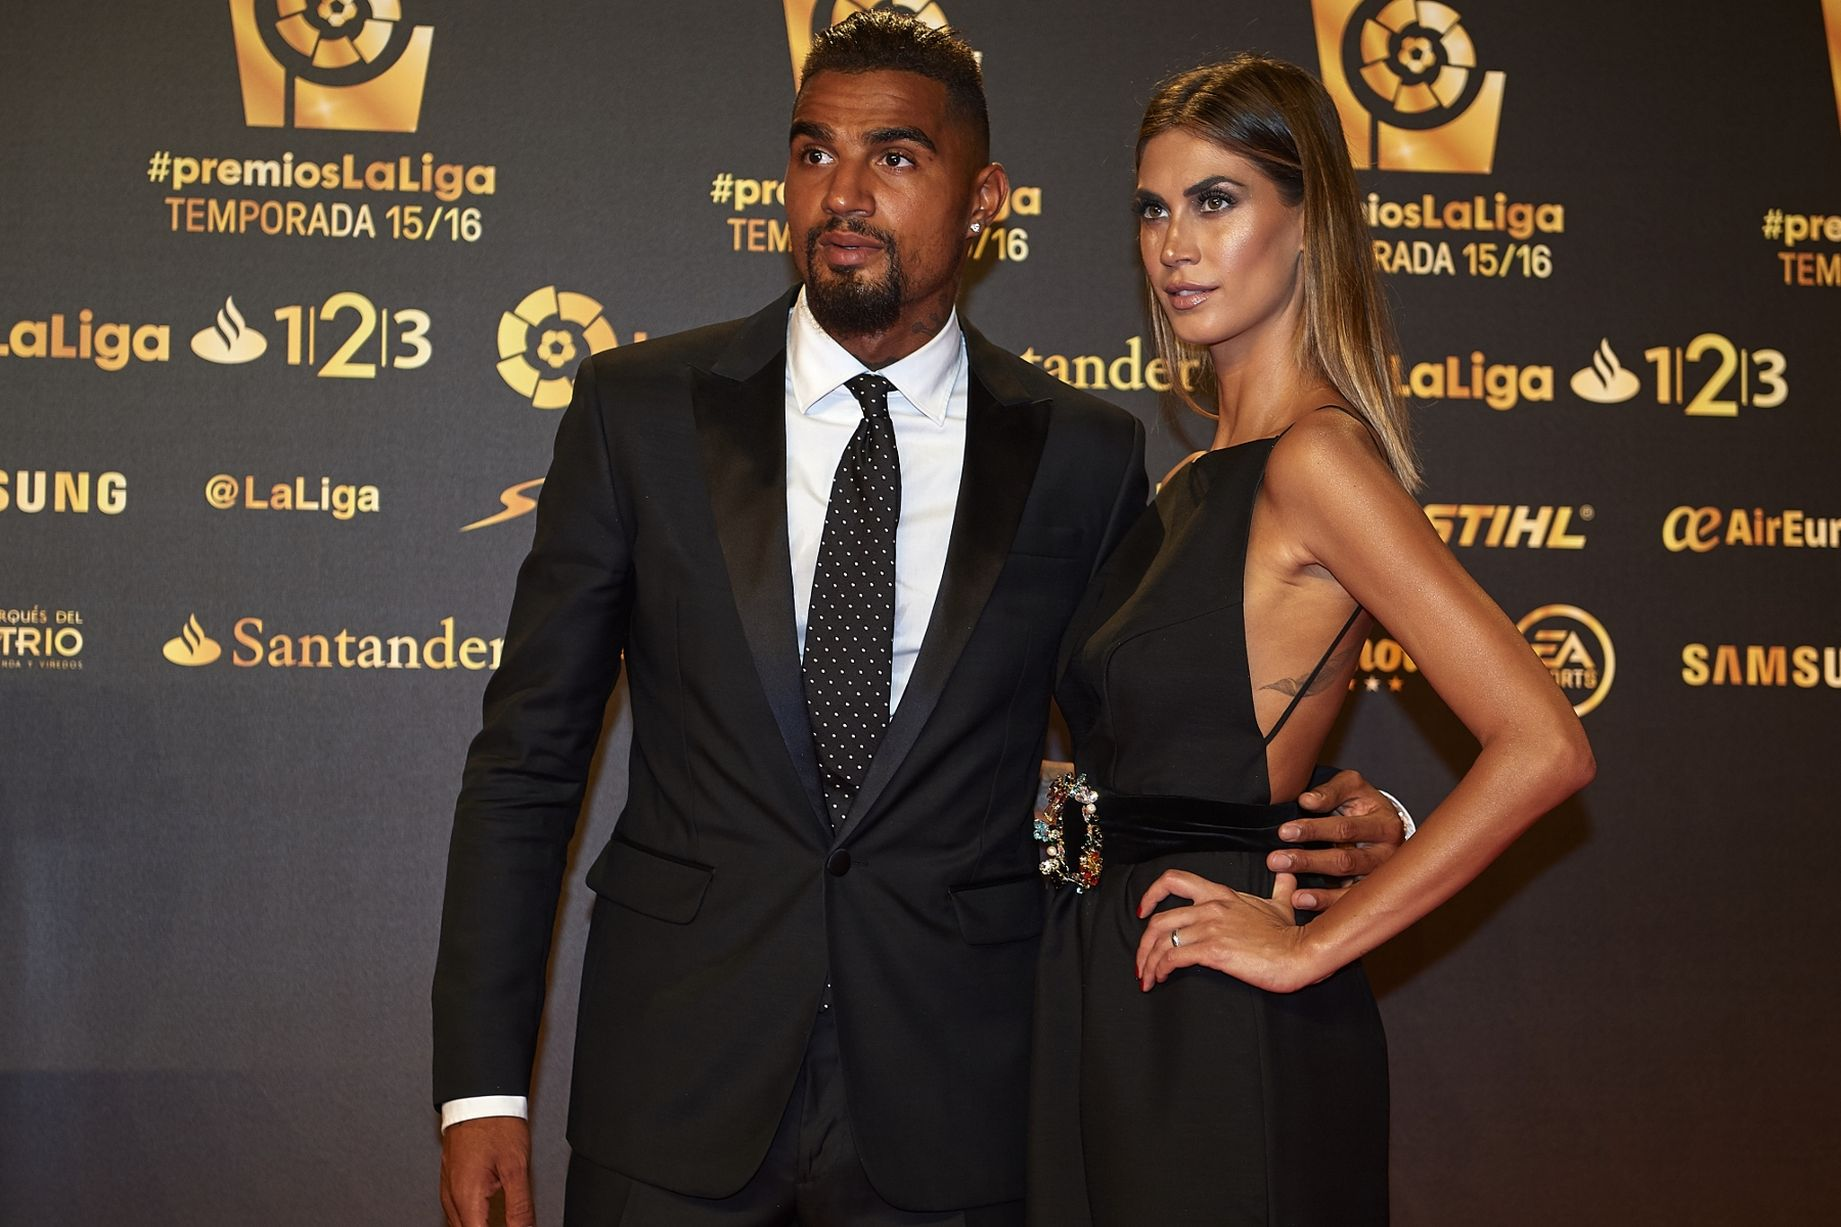 In-form Kevin Prince Boateng steals show at La Liga awards night with stunning wife Melissa Satta